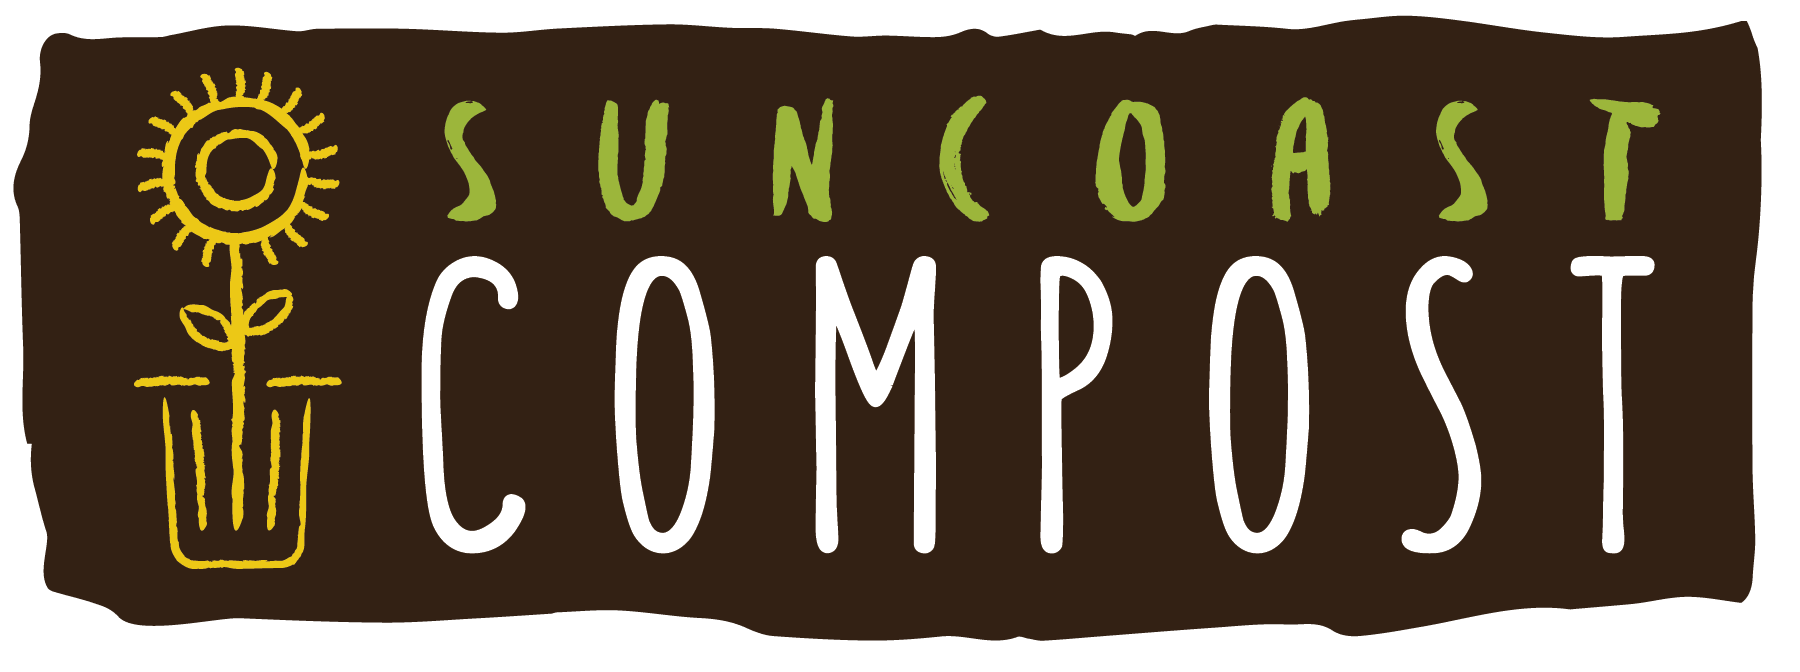 Suncoast Compost